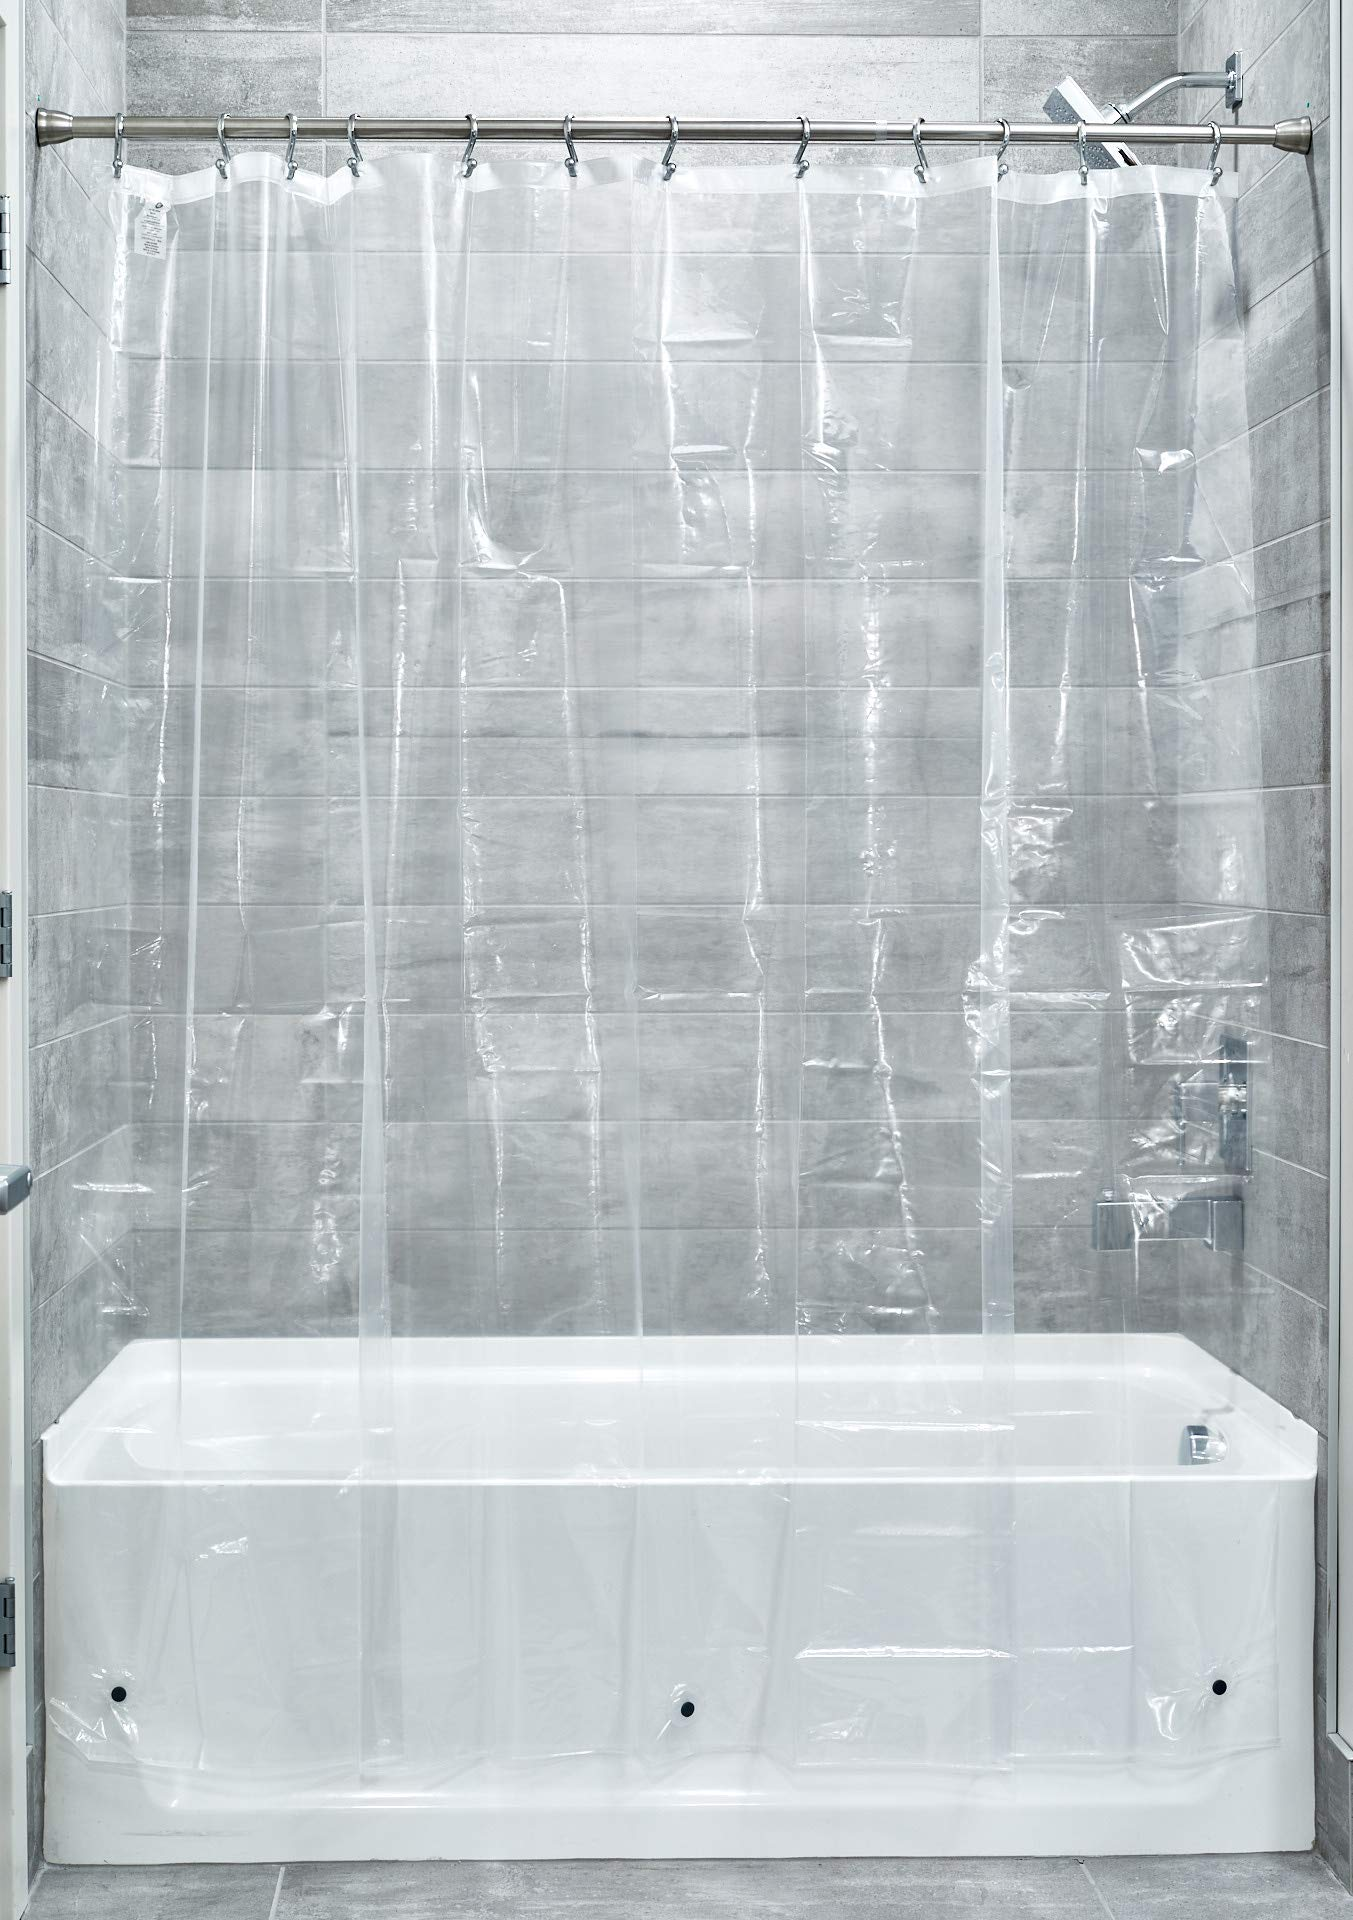 """iDesign Vinyl Stall-Sized Shower Liner, PVC-Free Mold- and Mildew-Resistant Curtain for Master, Guest, Kids' Bathroom, Bathtub, 54"""" x 78"""" - Clear"""